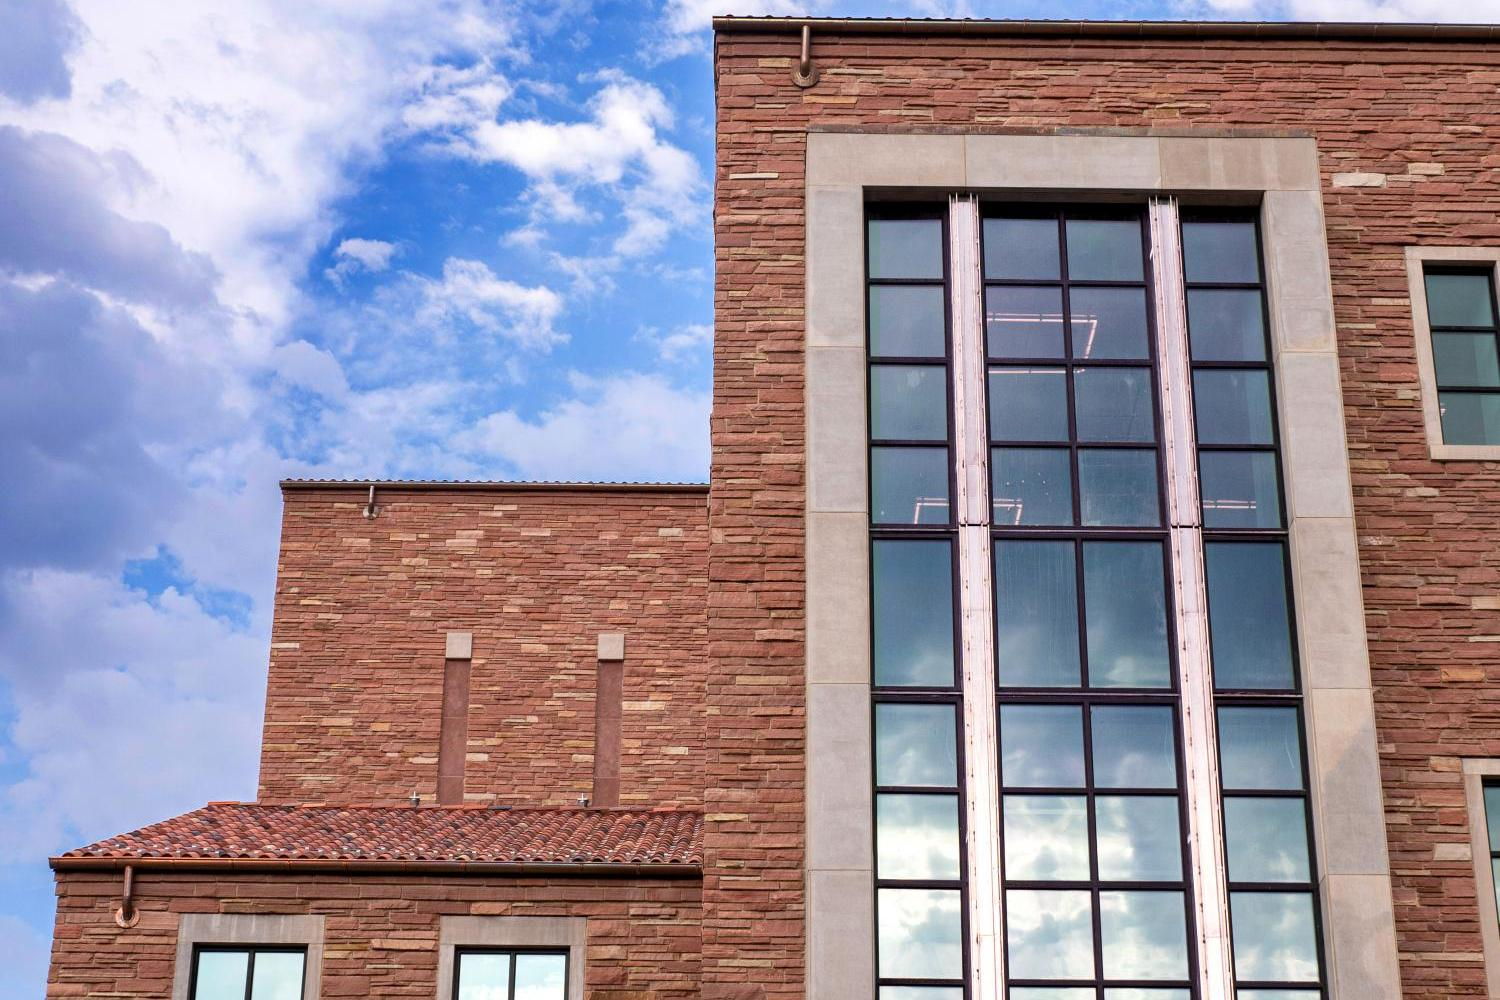 large window of the Imig Music Building against a blue sky